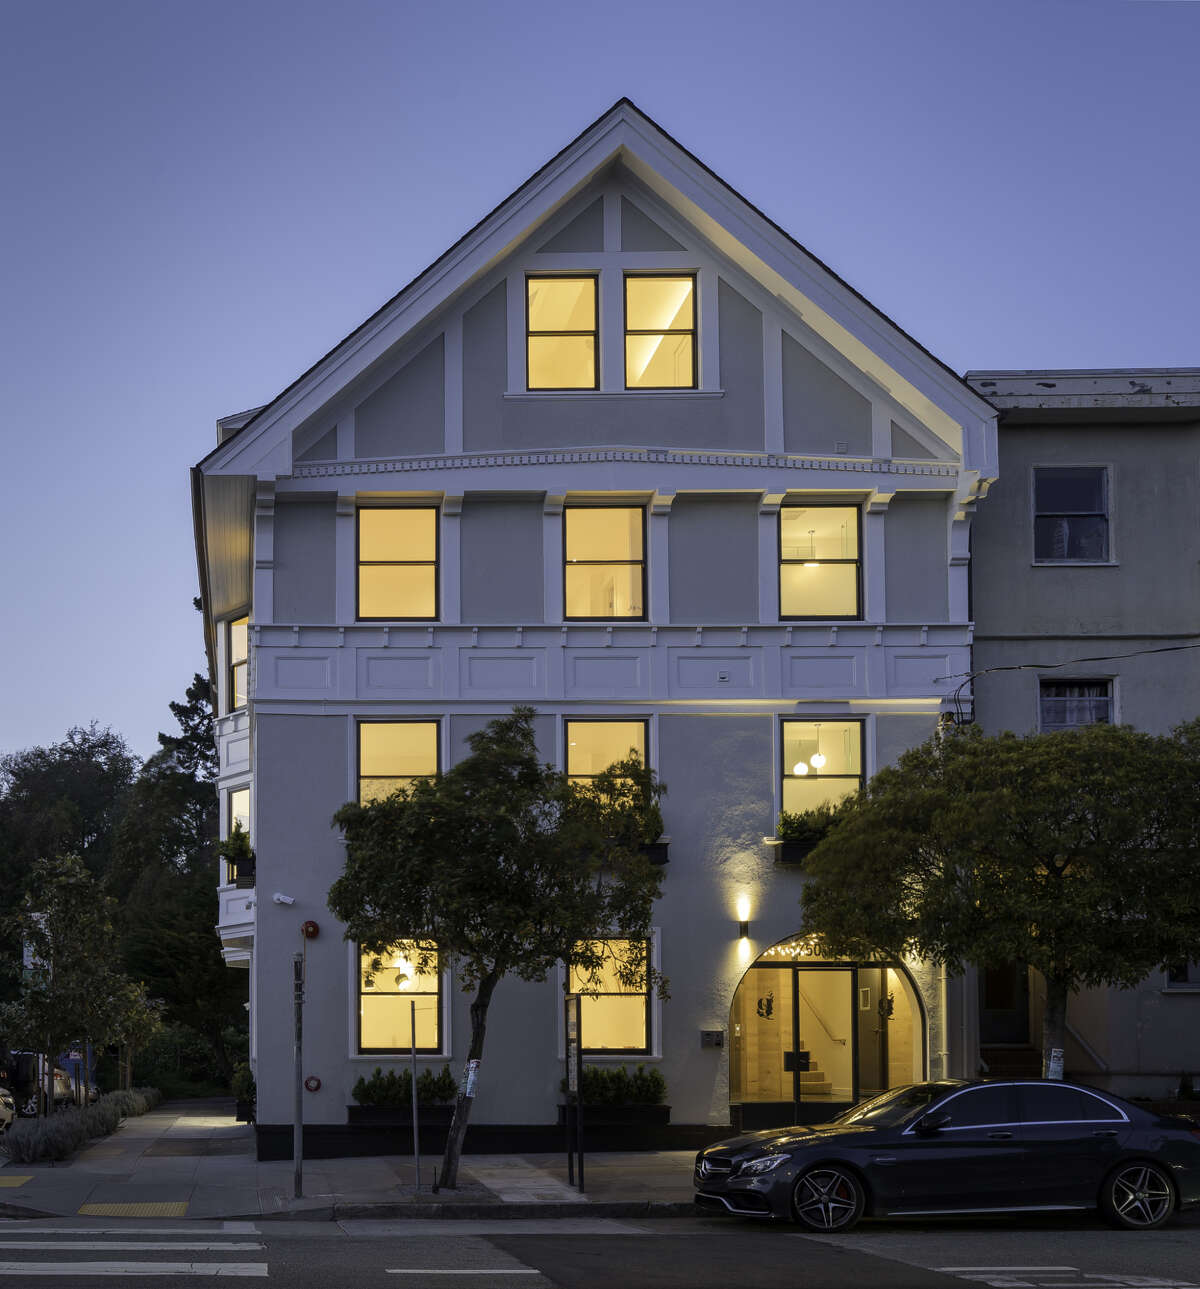 Though the interior abounds with contemporary finishes and comforts, the exterior retains its classical facade.